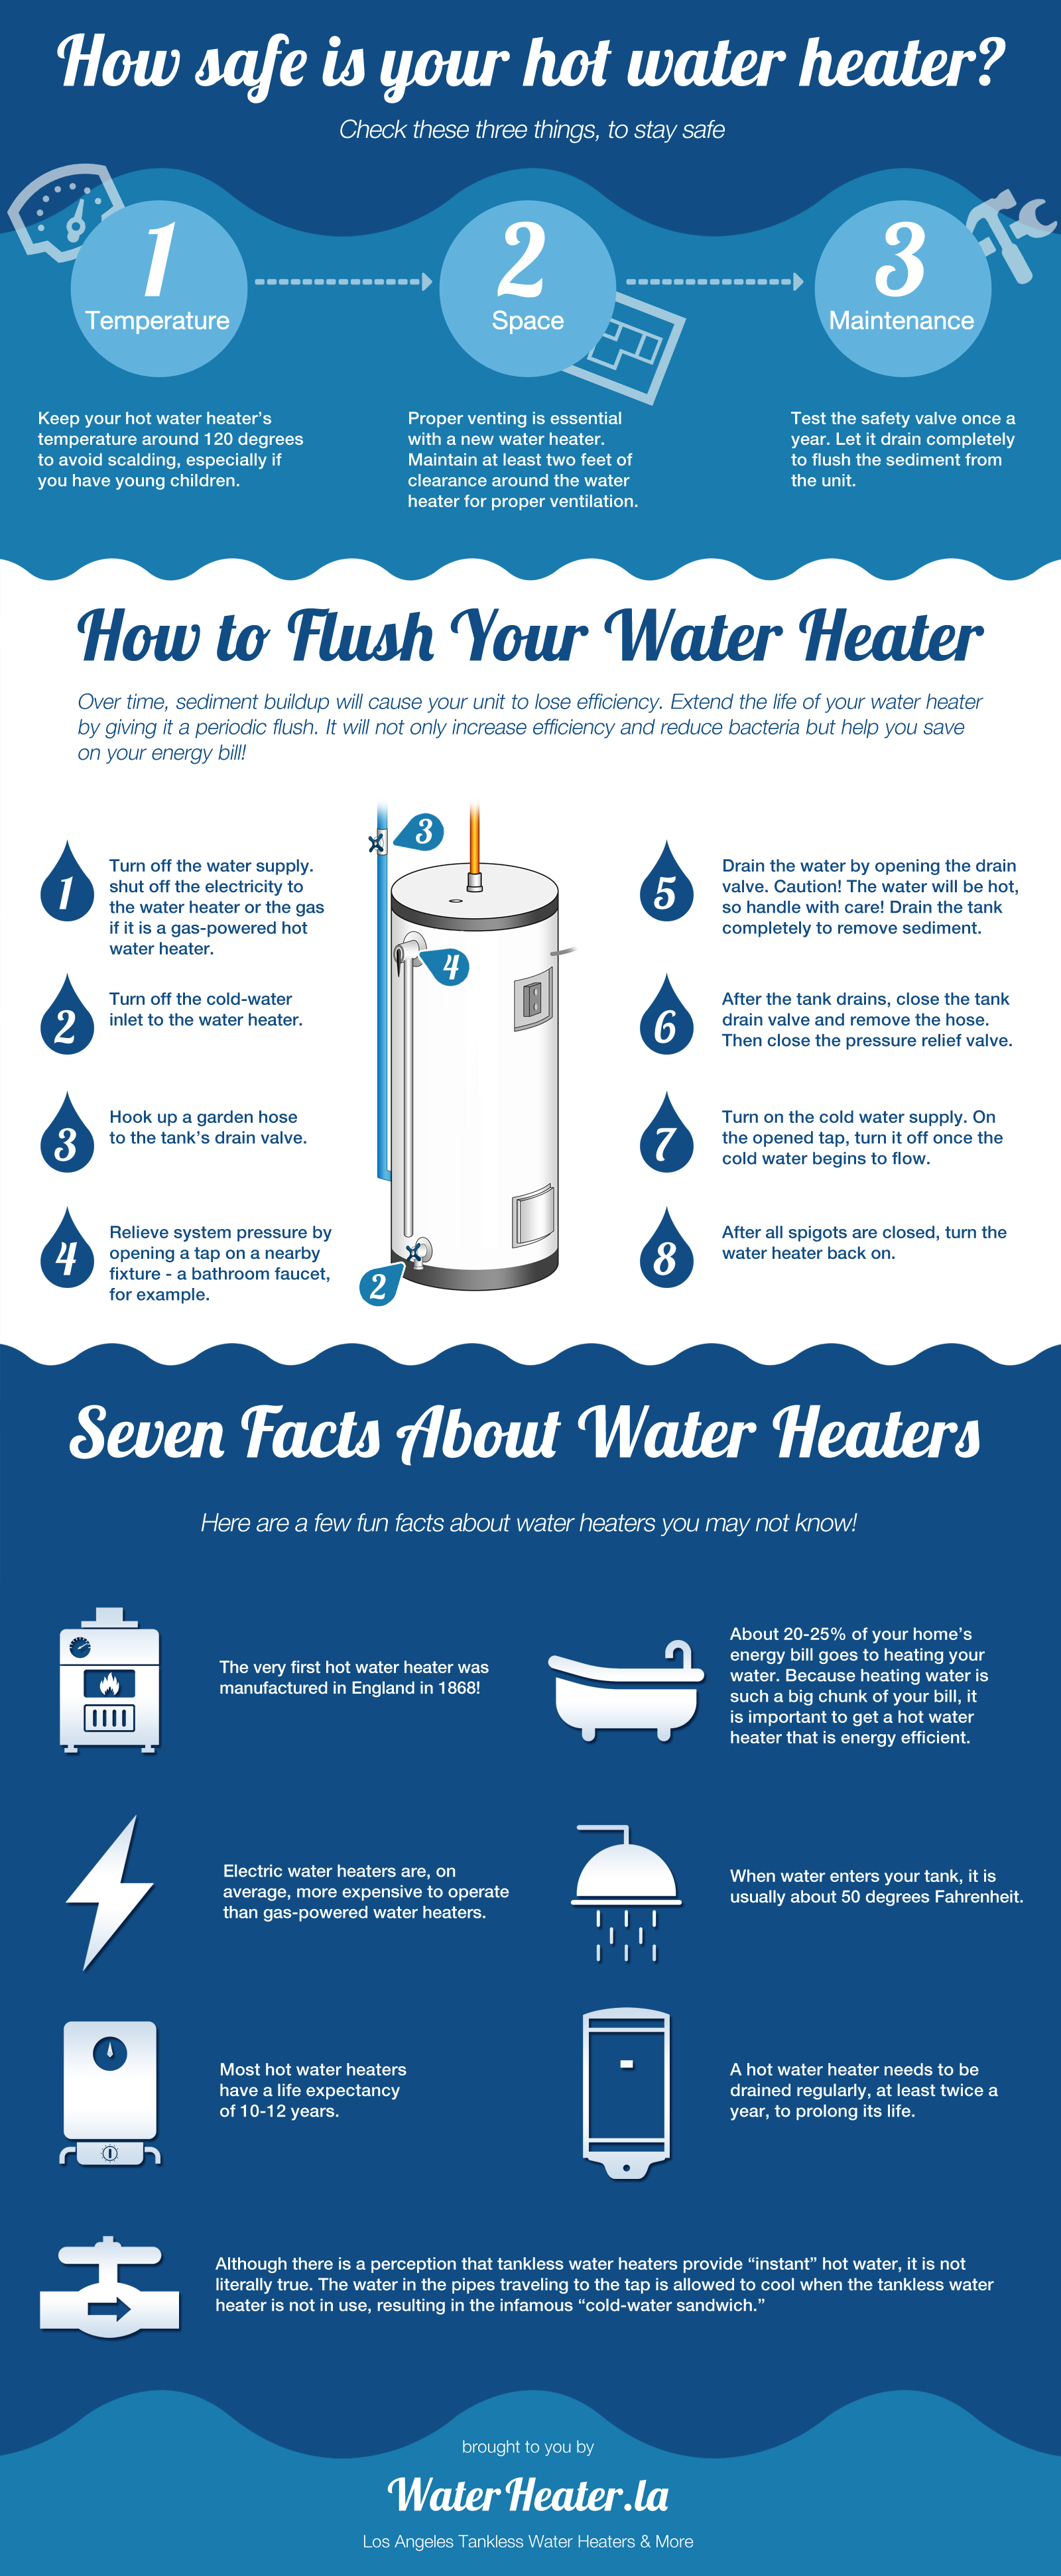 How To Flush Your Water Heater?